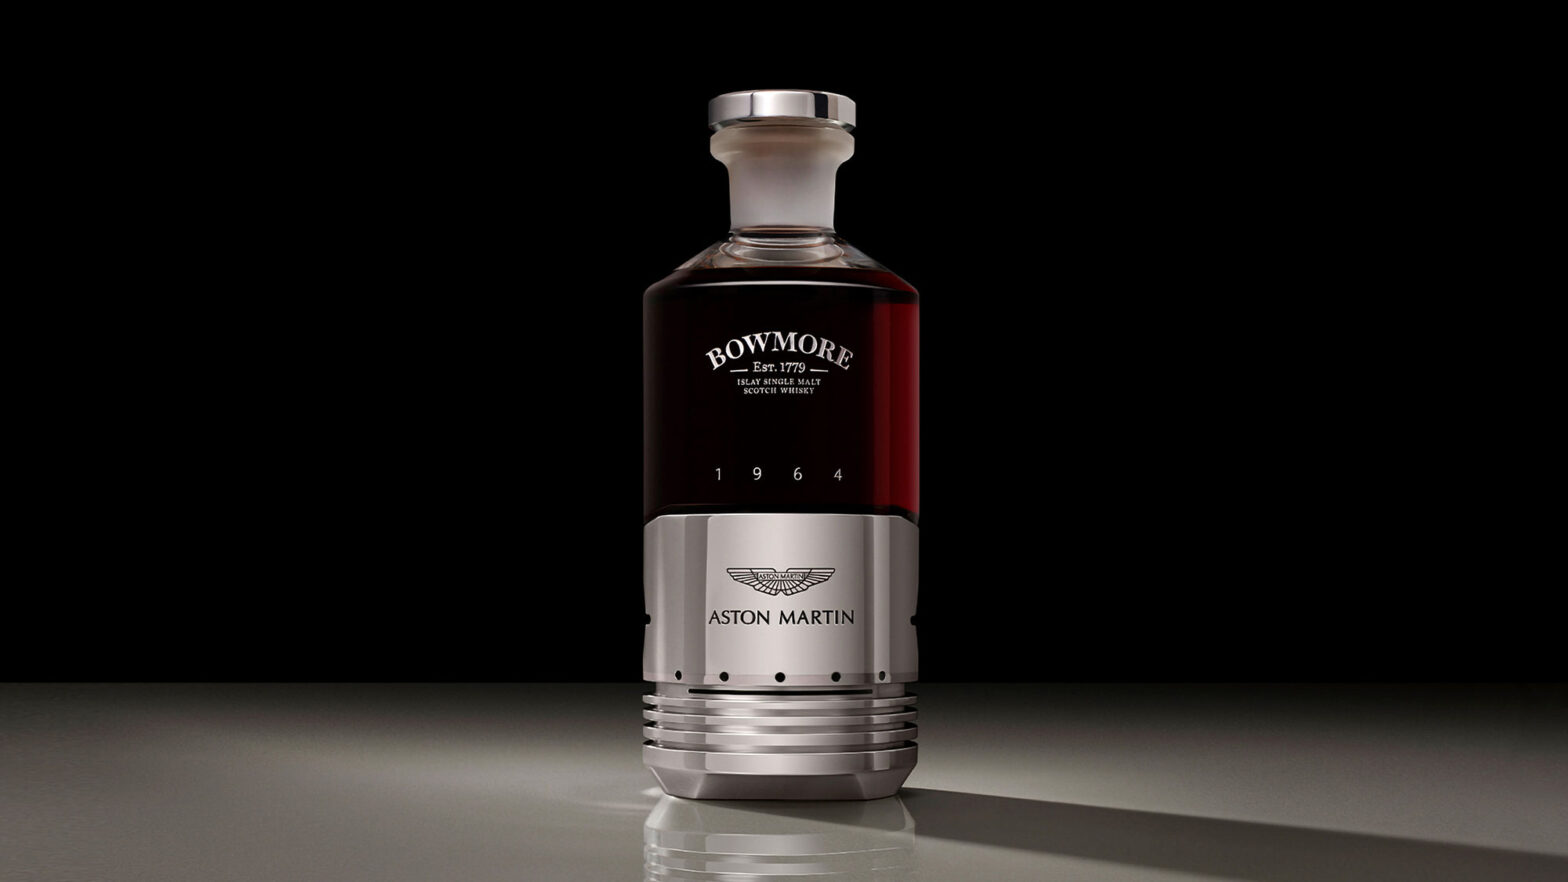 Bowmore x Aston Martin Black DB5 1964 Whisky